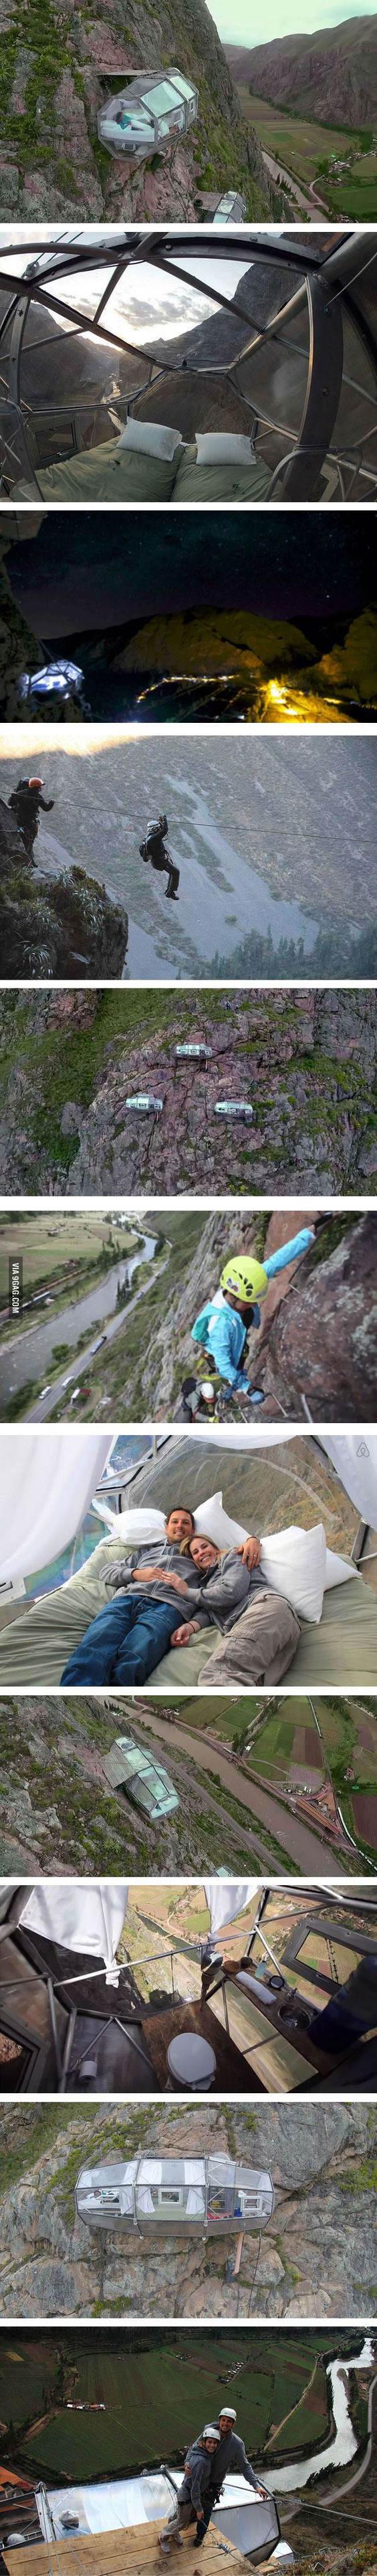 Skylodge! - living 400 feet (122m) above the ground on a cliff-face (Peru's Sacred Valley)